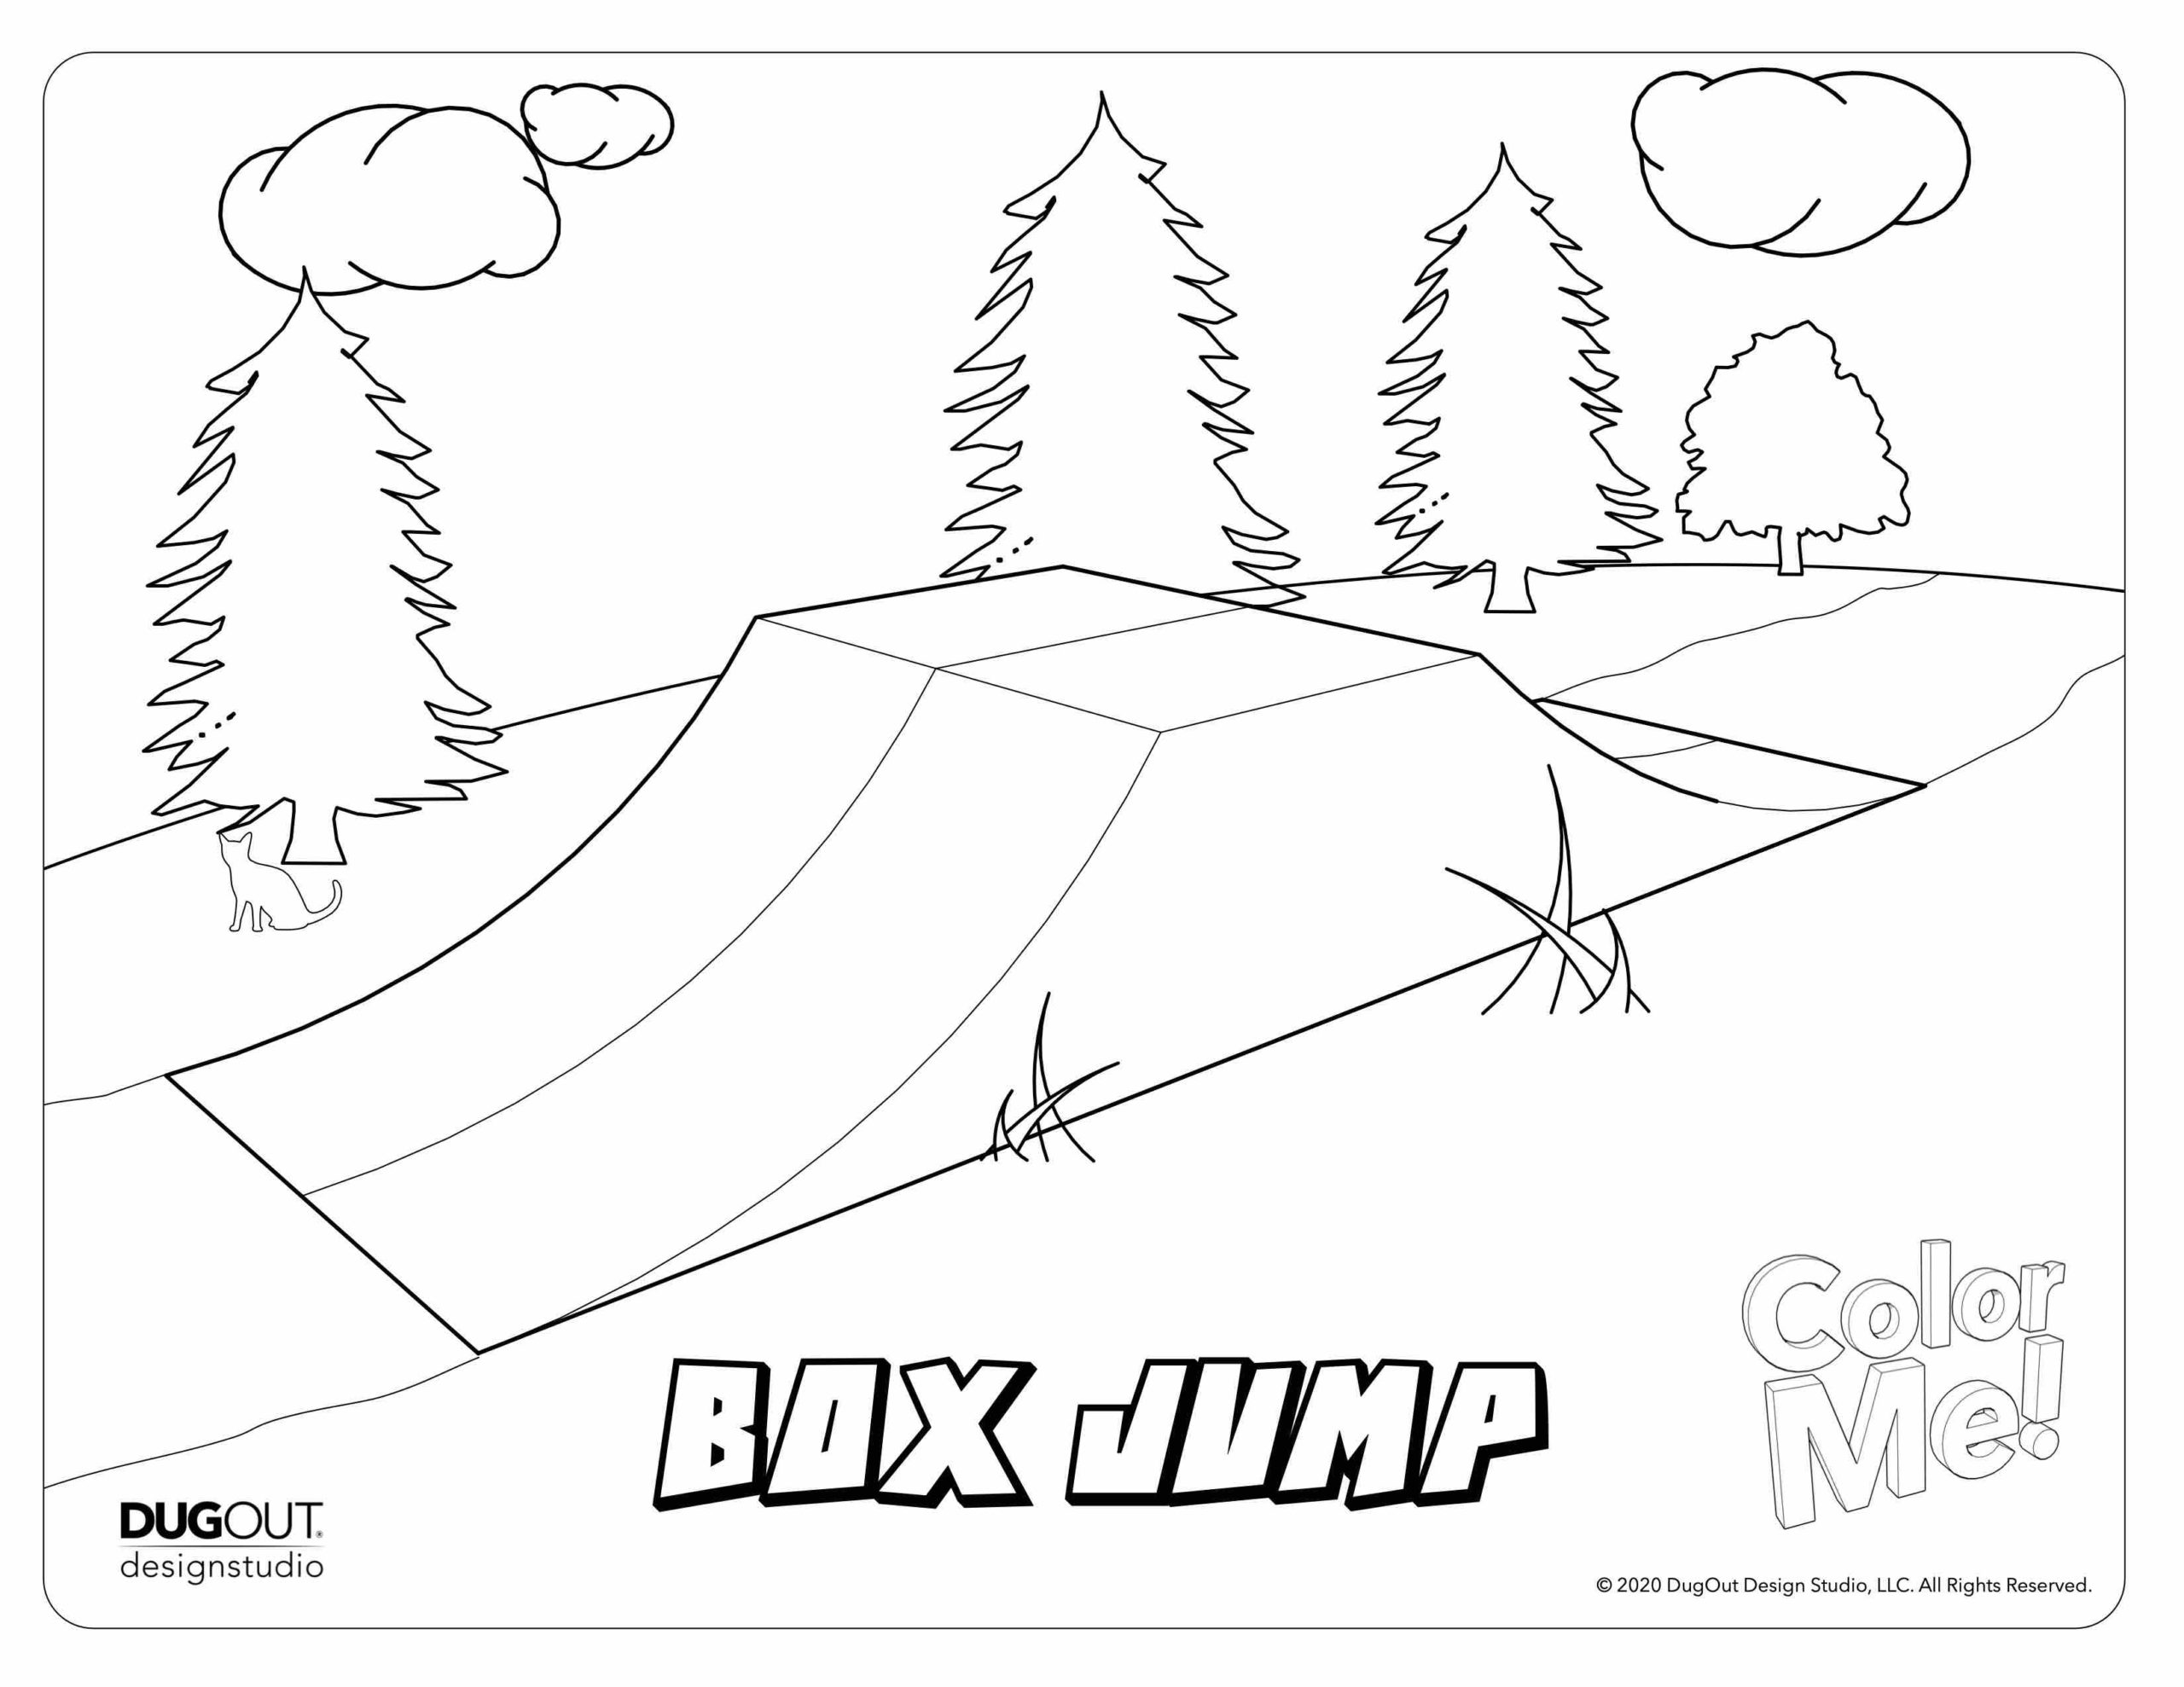 Box Jump coloring page in forest setting